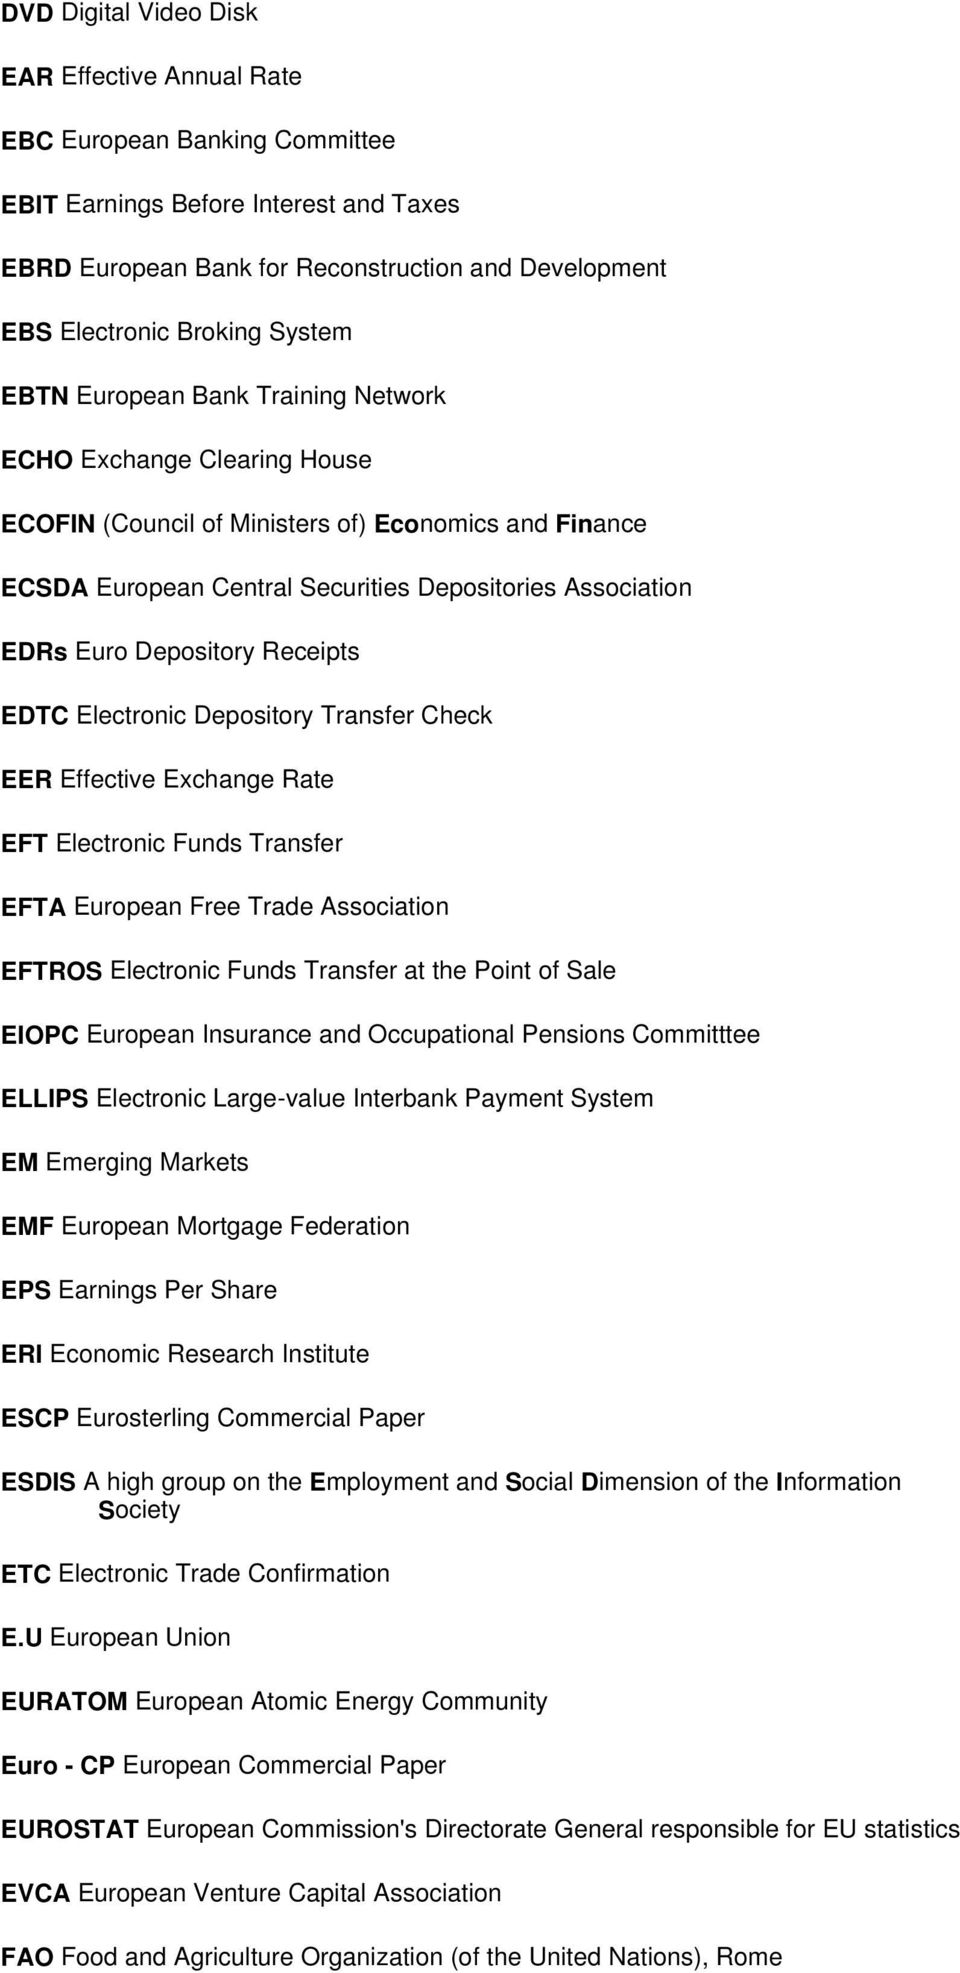 Depository Receipts EDTC Electronic Depository Transfer Check EER Effective Exchange Rate EFT Electronic Funds Transfer EFTA European Free Trade Association EFTROS Electronic Funds Transfer at the